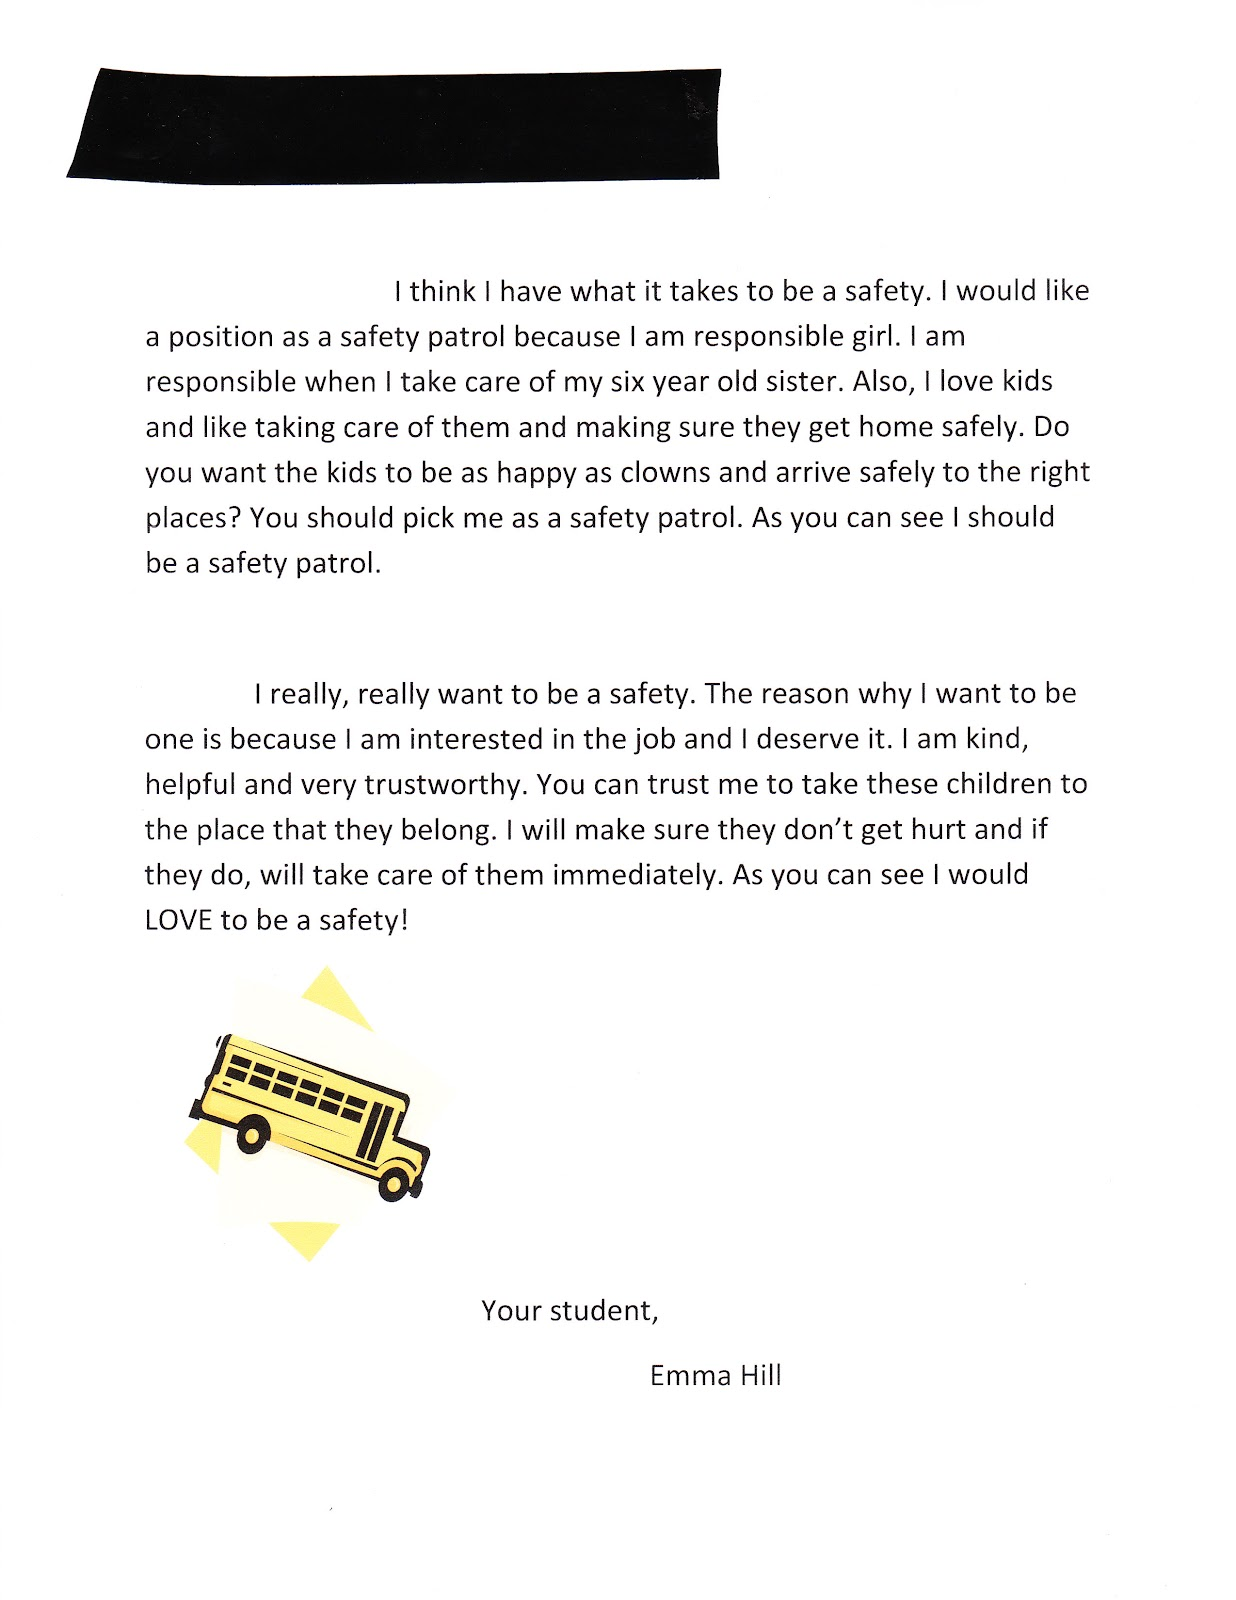 book thief essay essay paper topics research essay ideas siol ip  school safety essay the letter that landed my daughter on the the letter that landed my